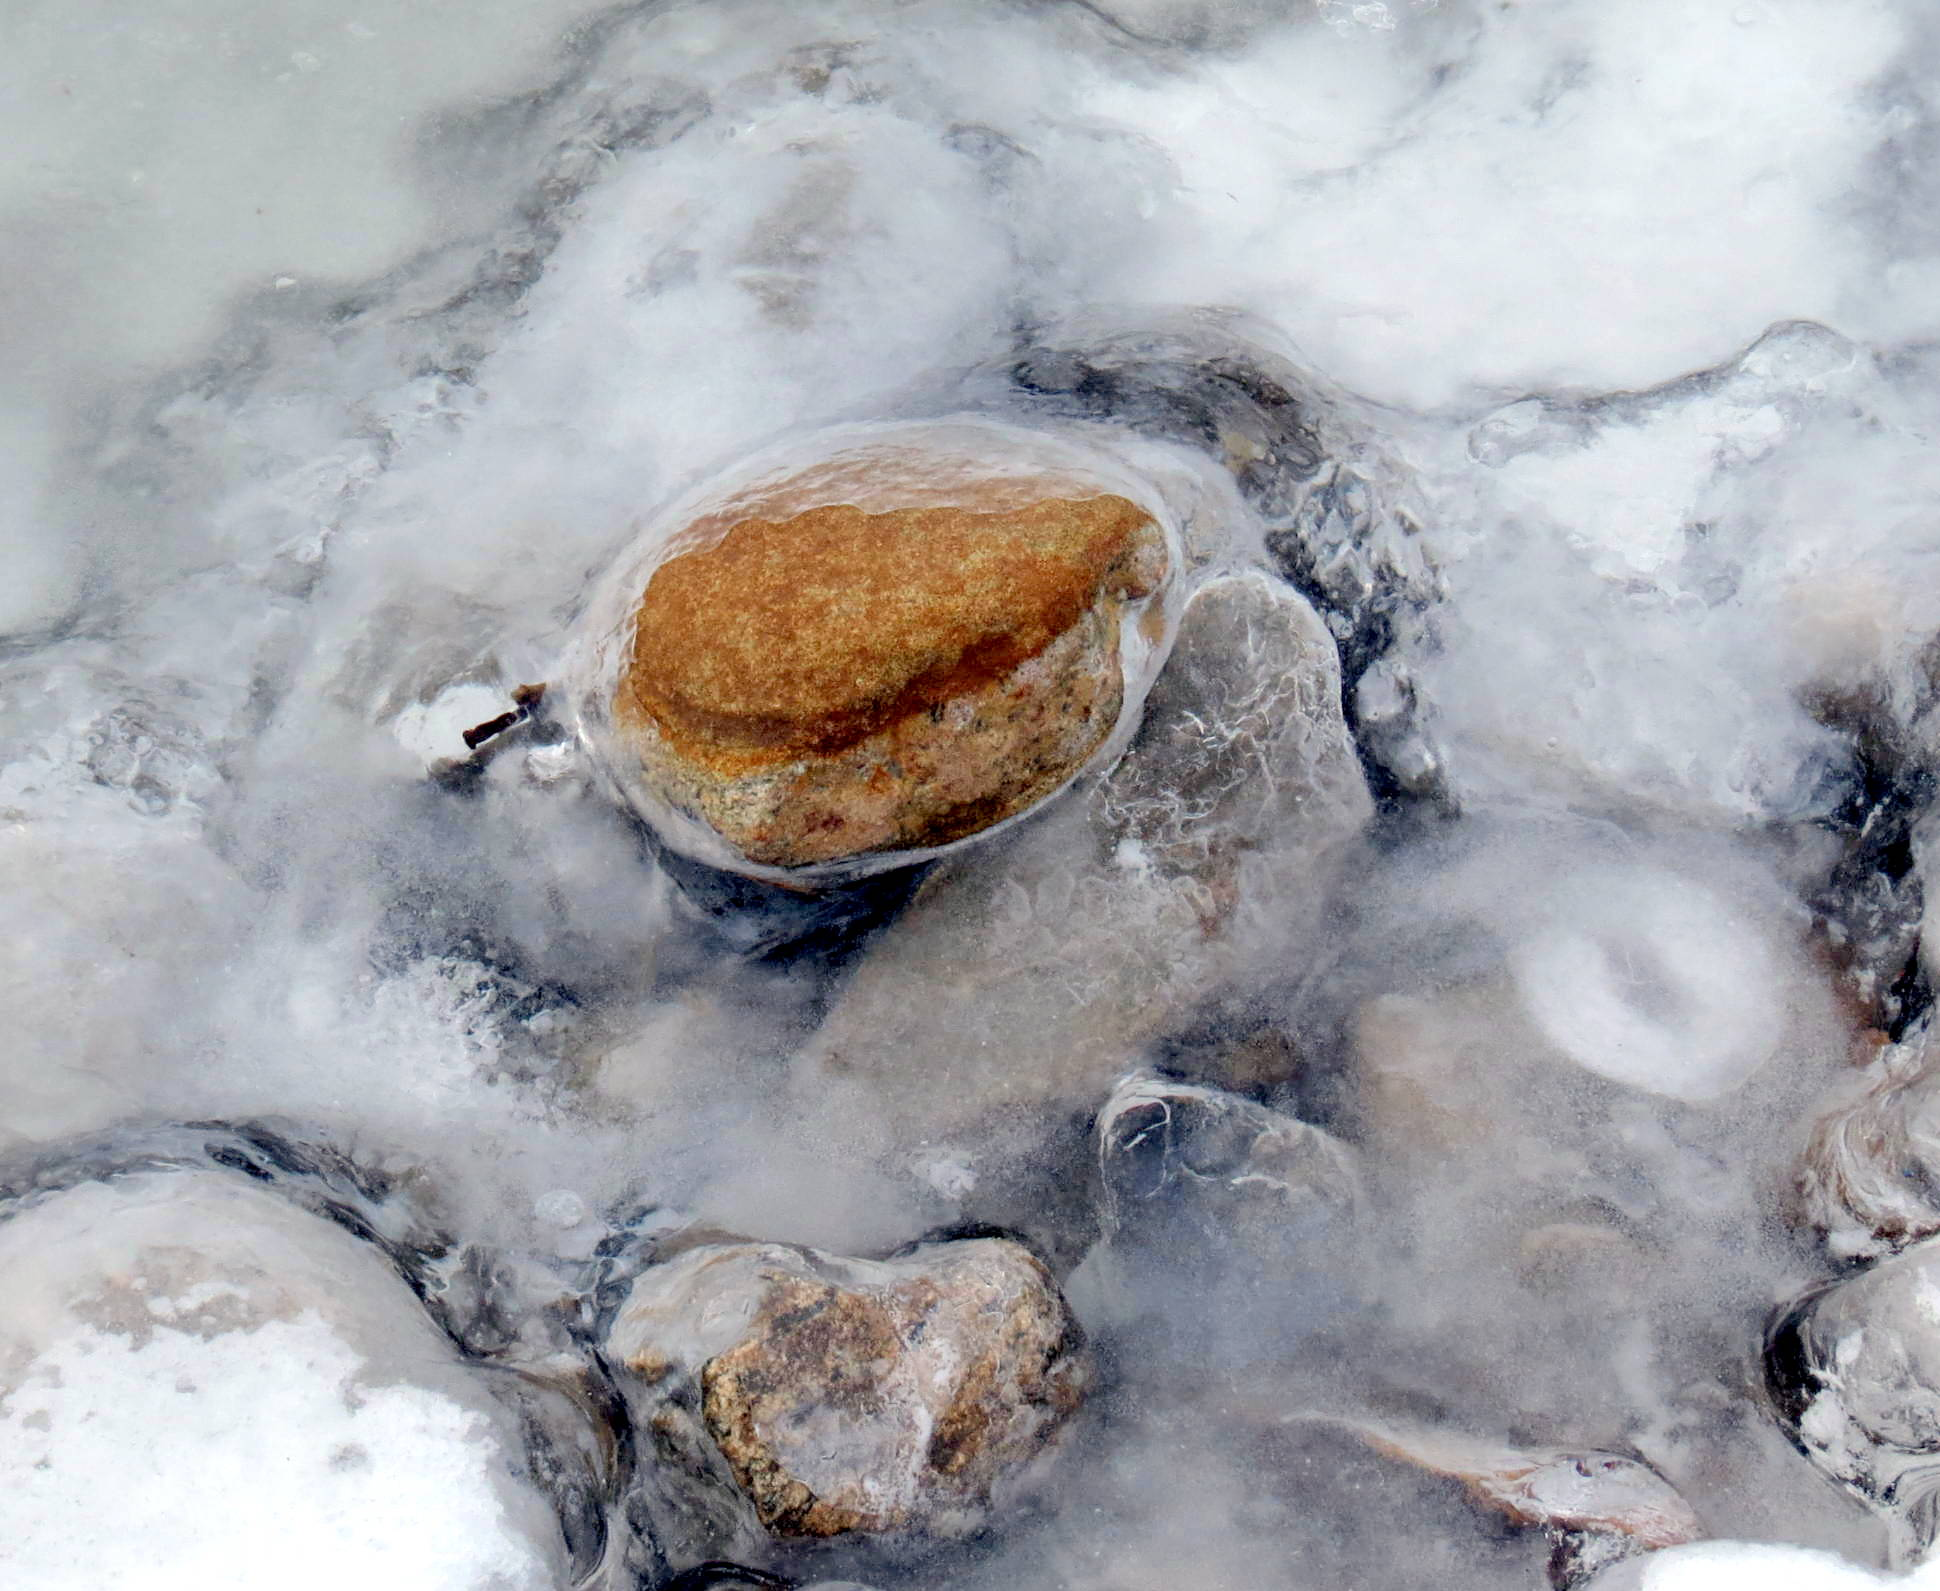 18. Stone Frozen in Ice